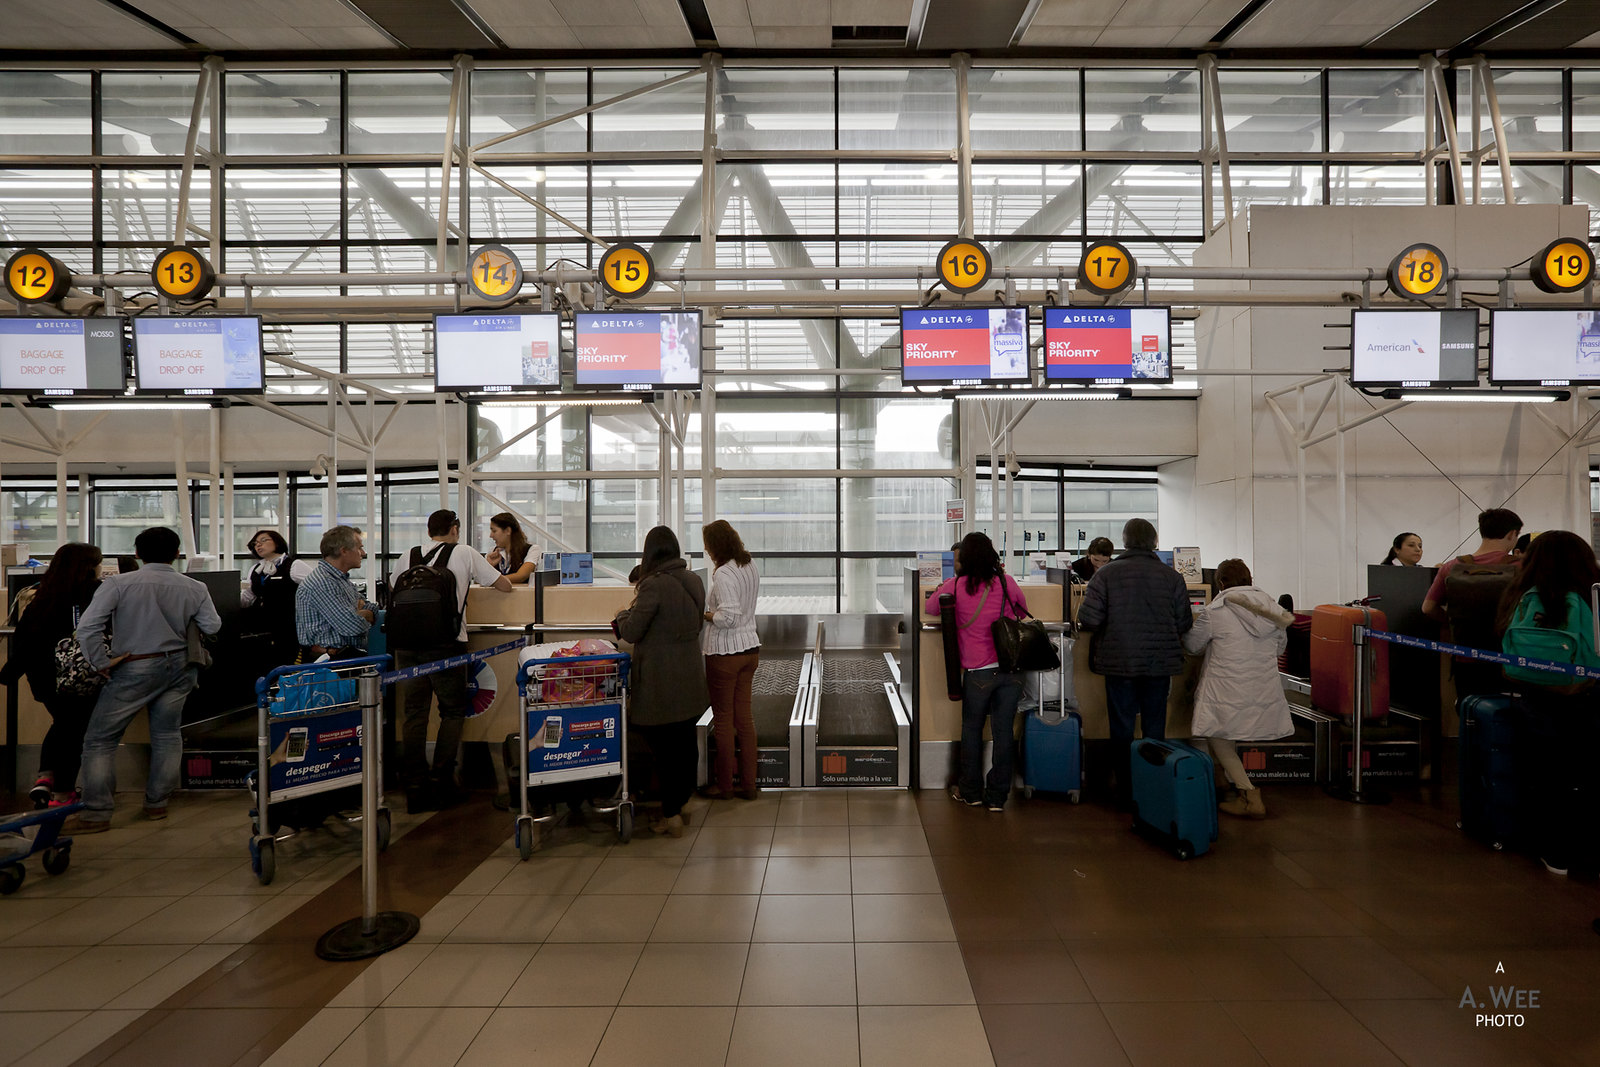 Sky Priority check-in desks